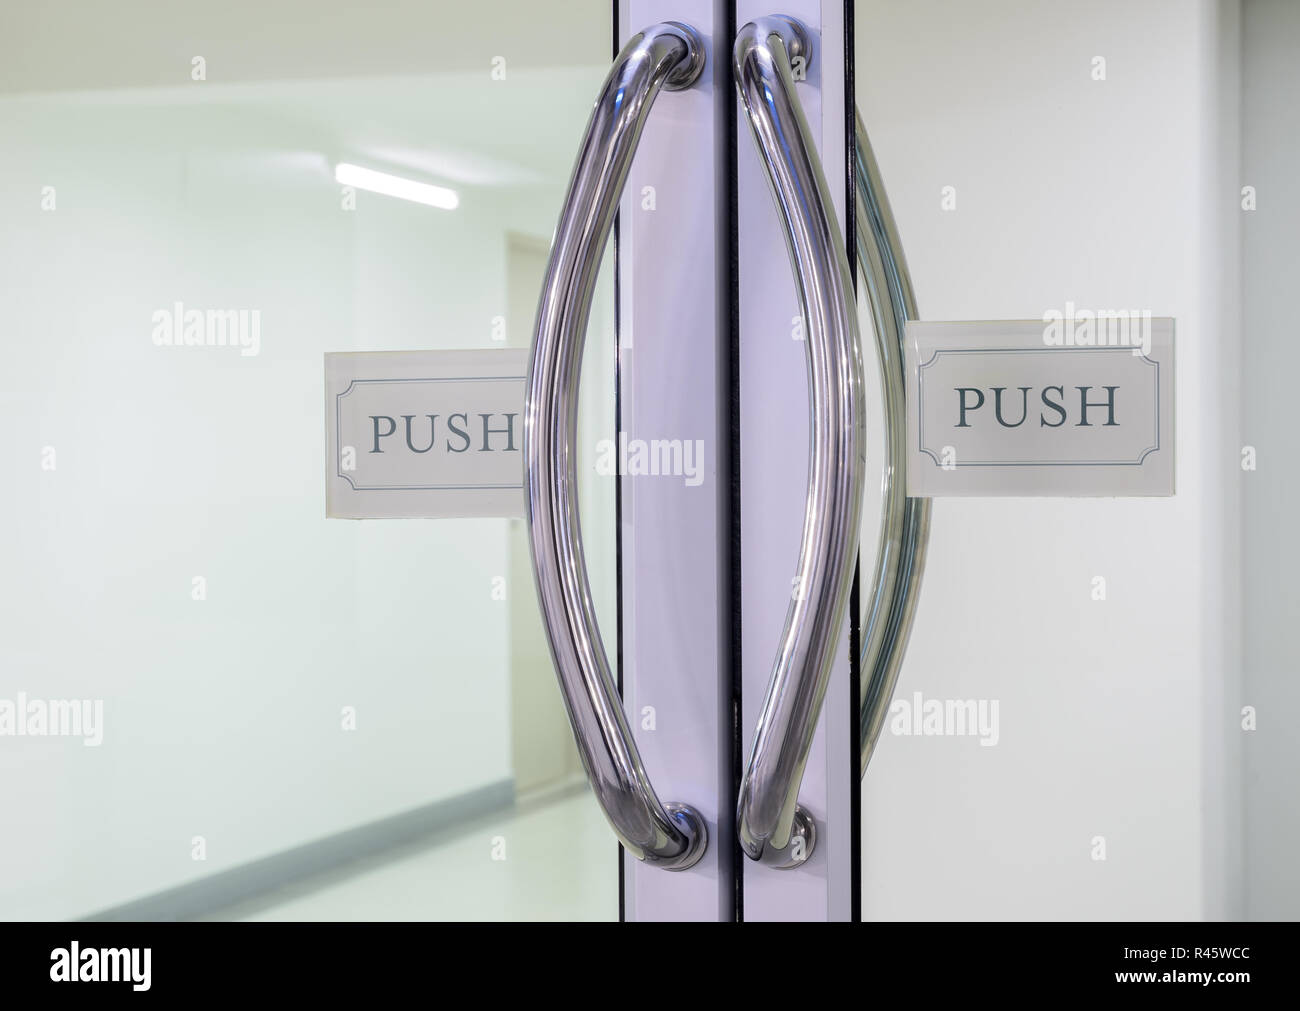 Chrome handles with push sign on glass door - Stock Image